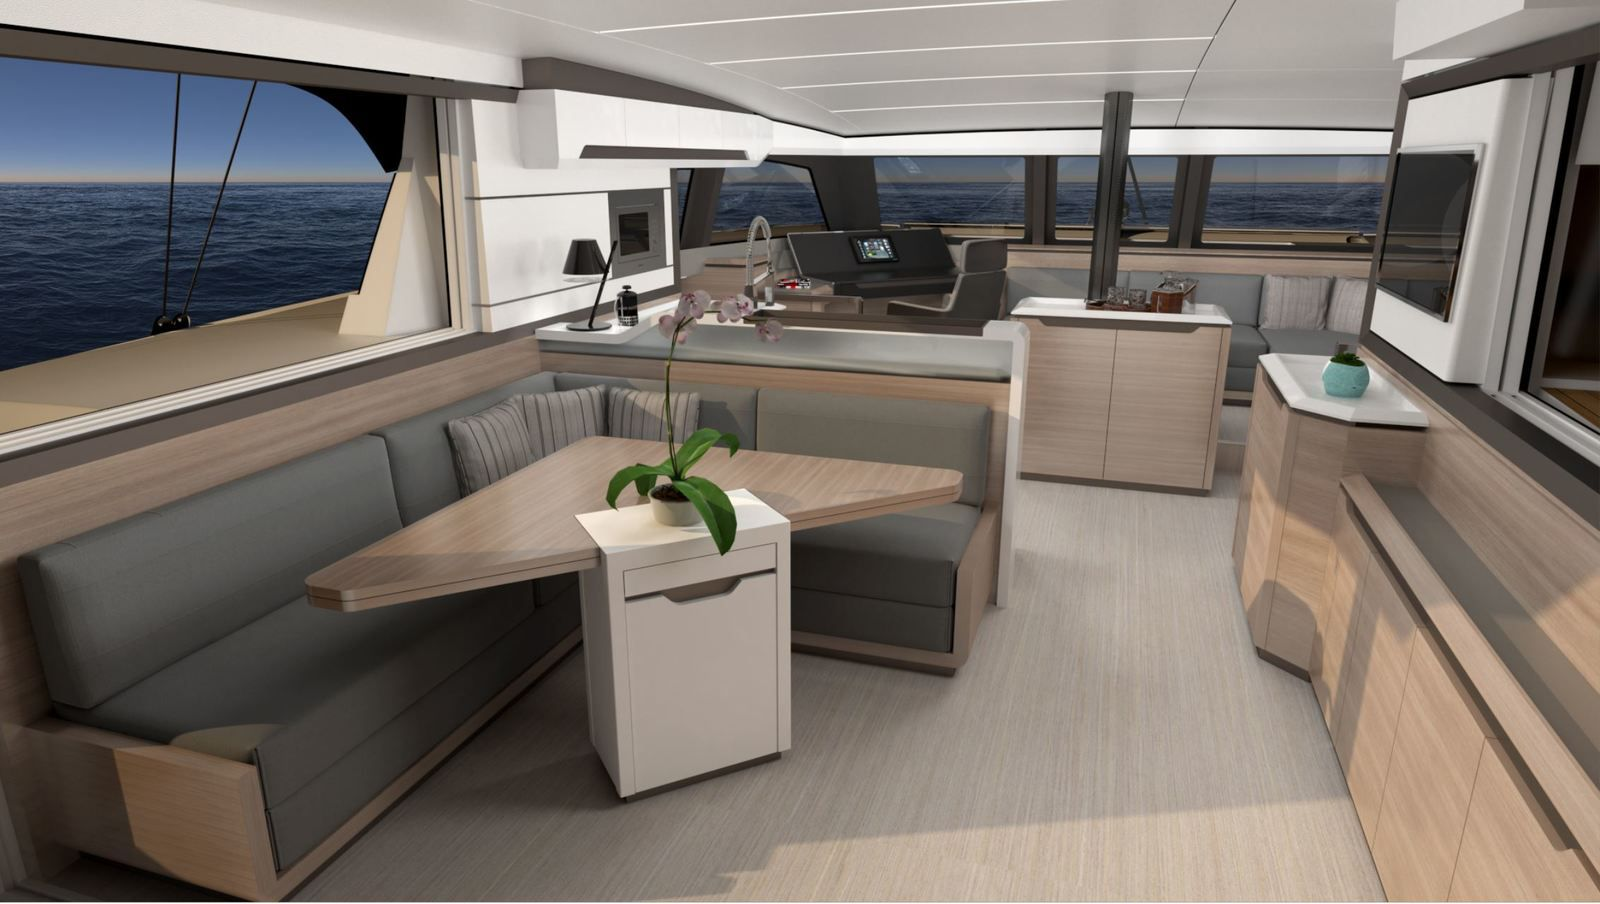 Catana Ocean Class - bluewater sailing and high performance... in Open mode !